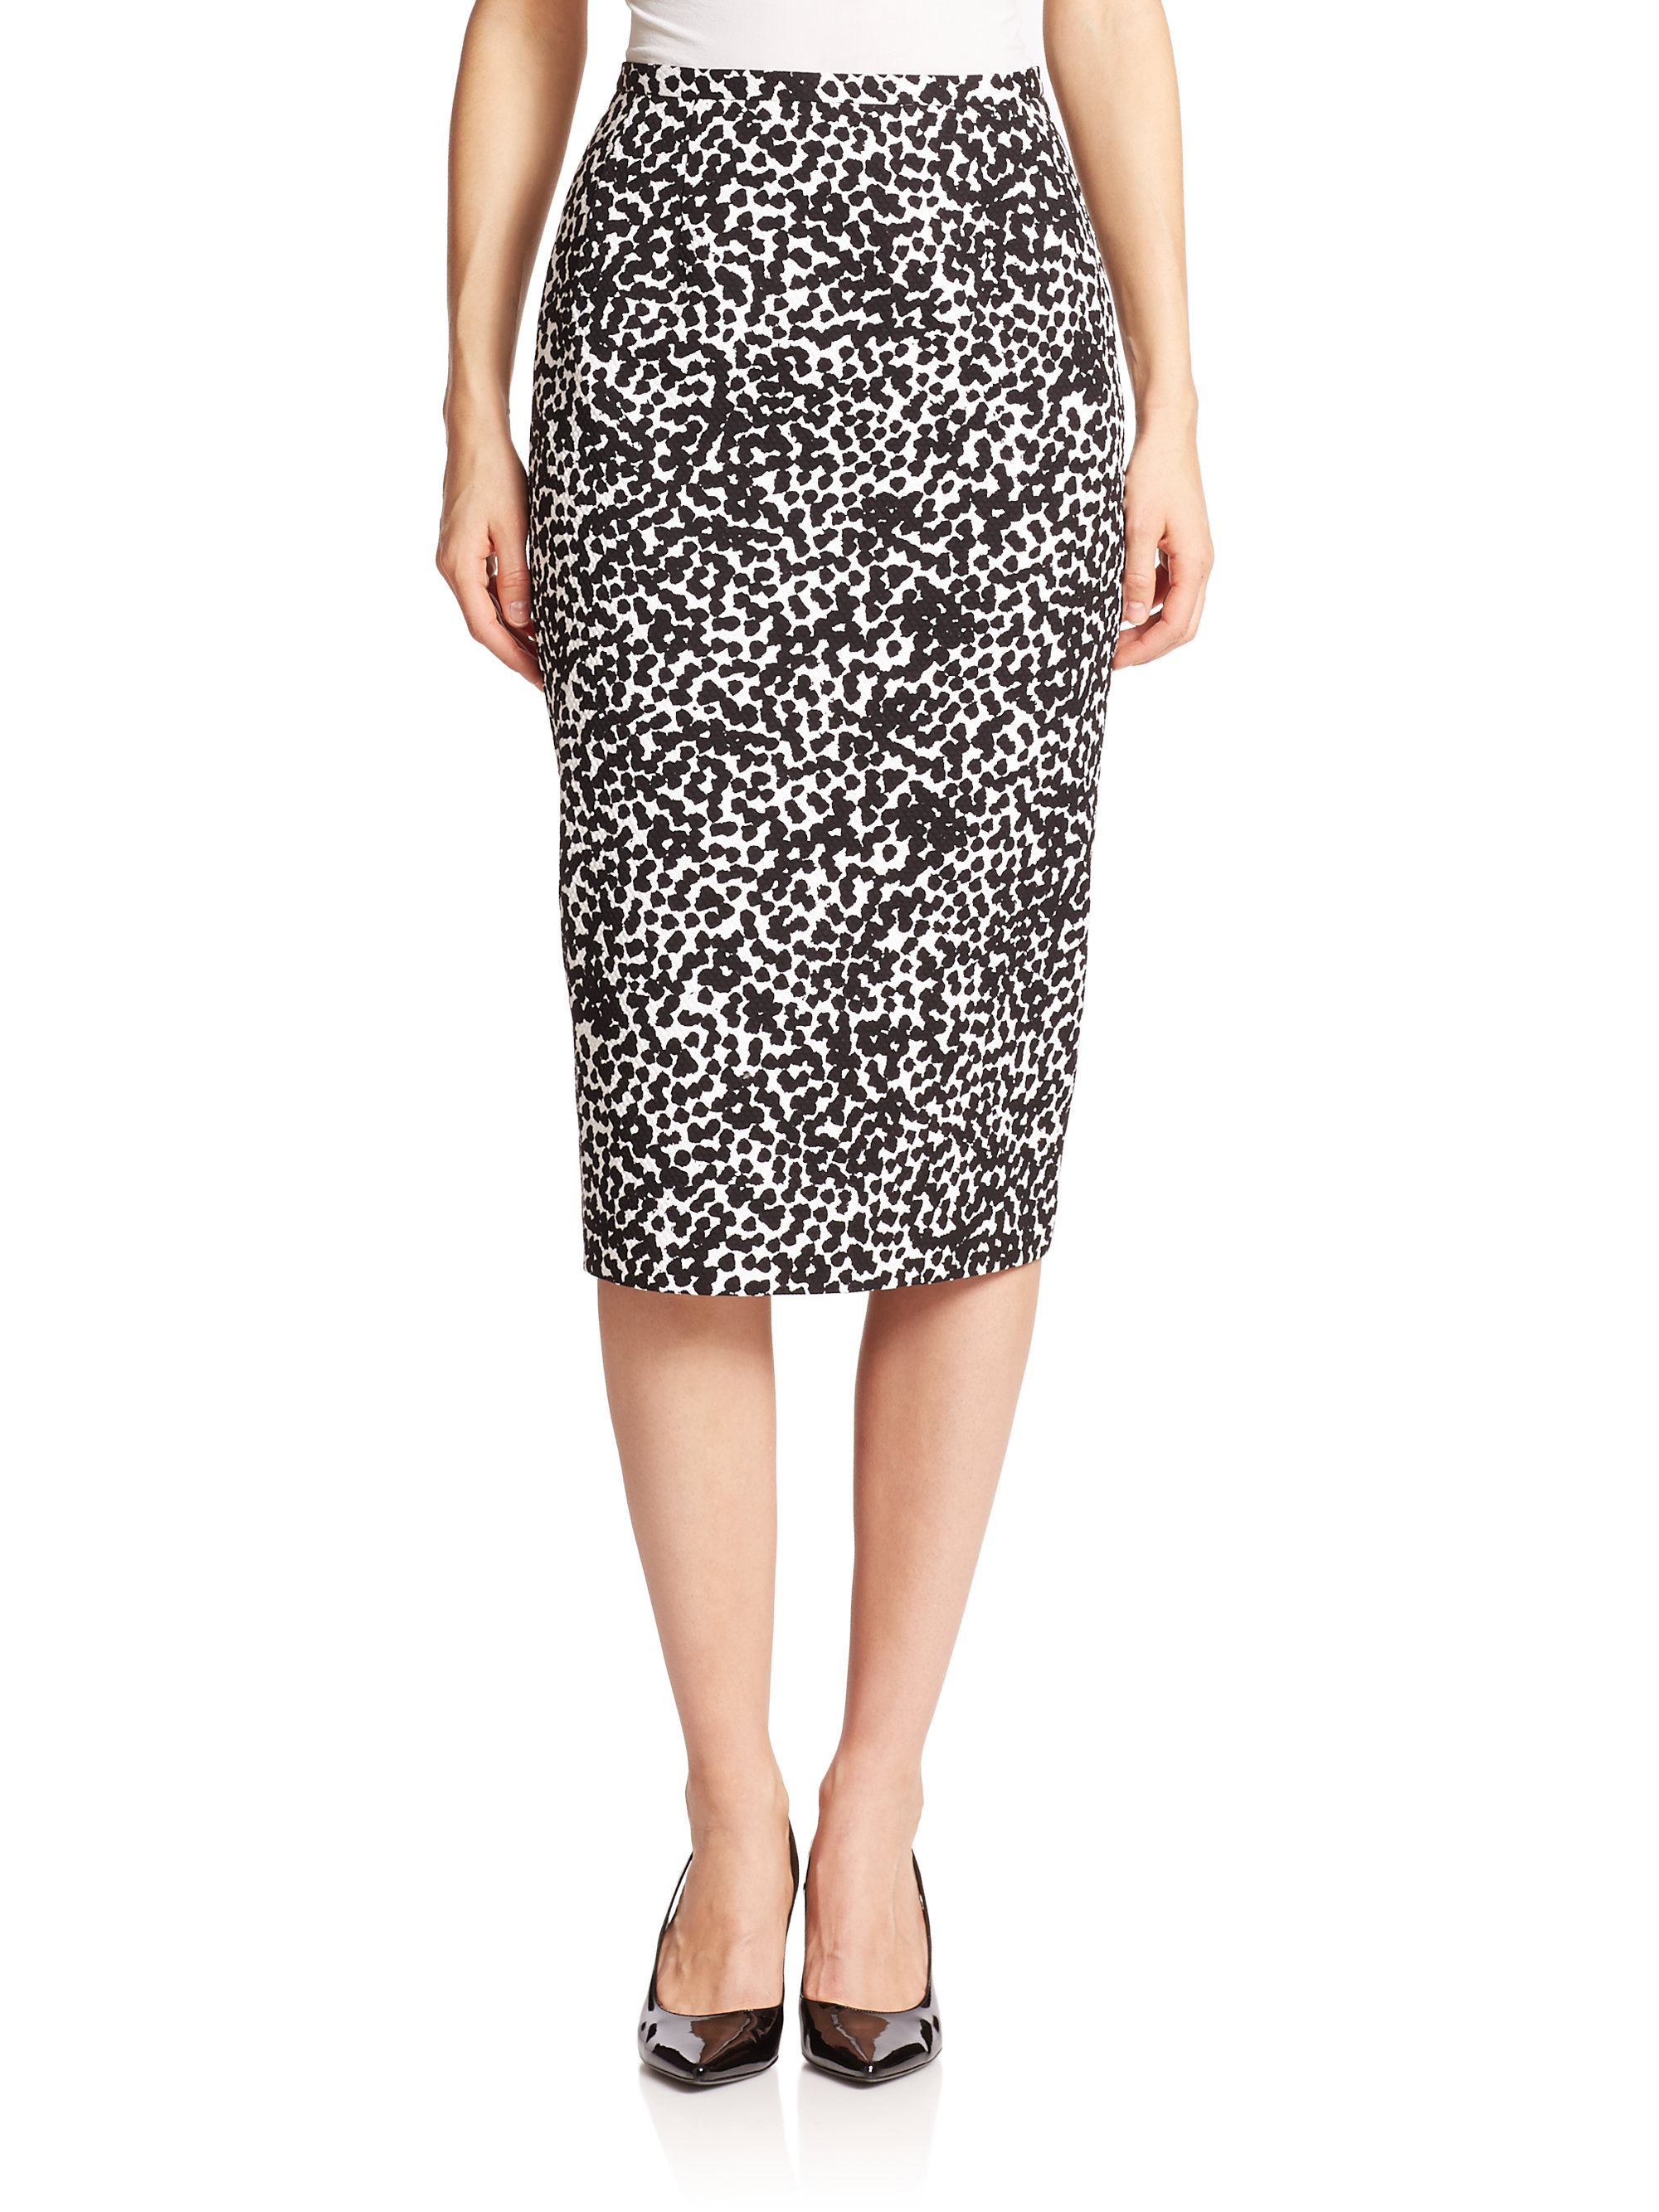 michael kors abstract dot pencil skirt in black lyst